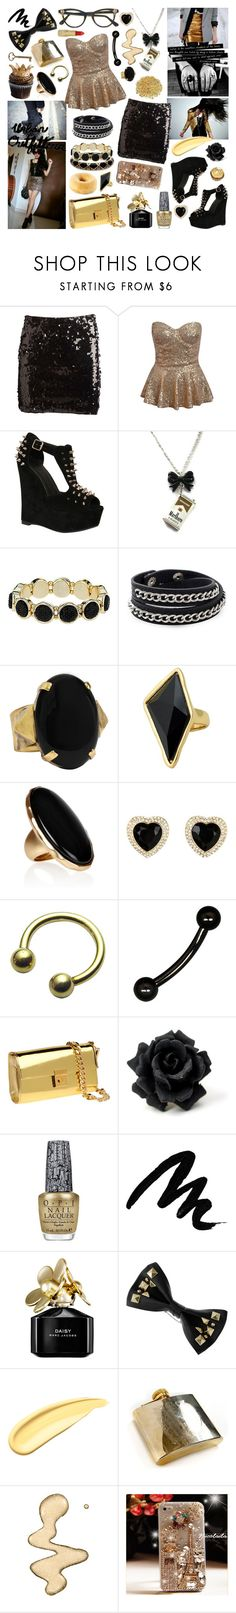 """""""I Wanna Be Next To You, Black & Gold"""" by aquabatgirl ❤ liked on Polyvore featuring Simone Perele, Pieces, Dorothy Perkins, Oxxo, Ela Stone, Belle Noel by Kim Kardashian, Kenneth Jay Lane, GUESS, Giuseppe Zanotti and OPI"""